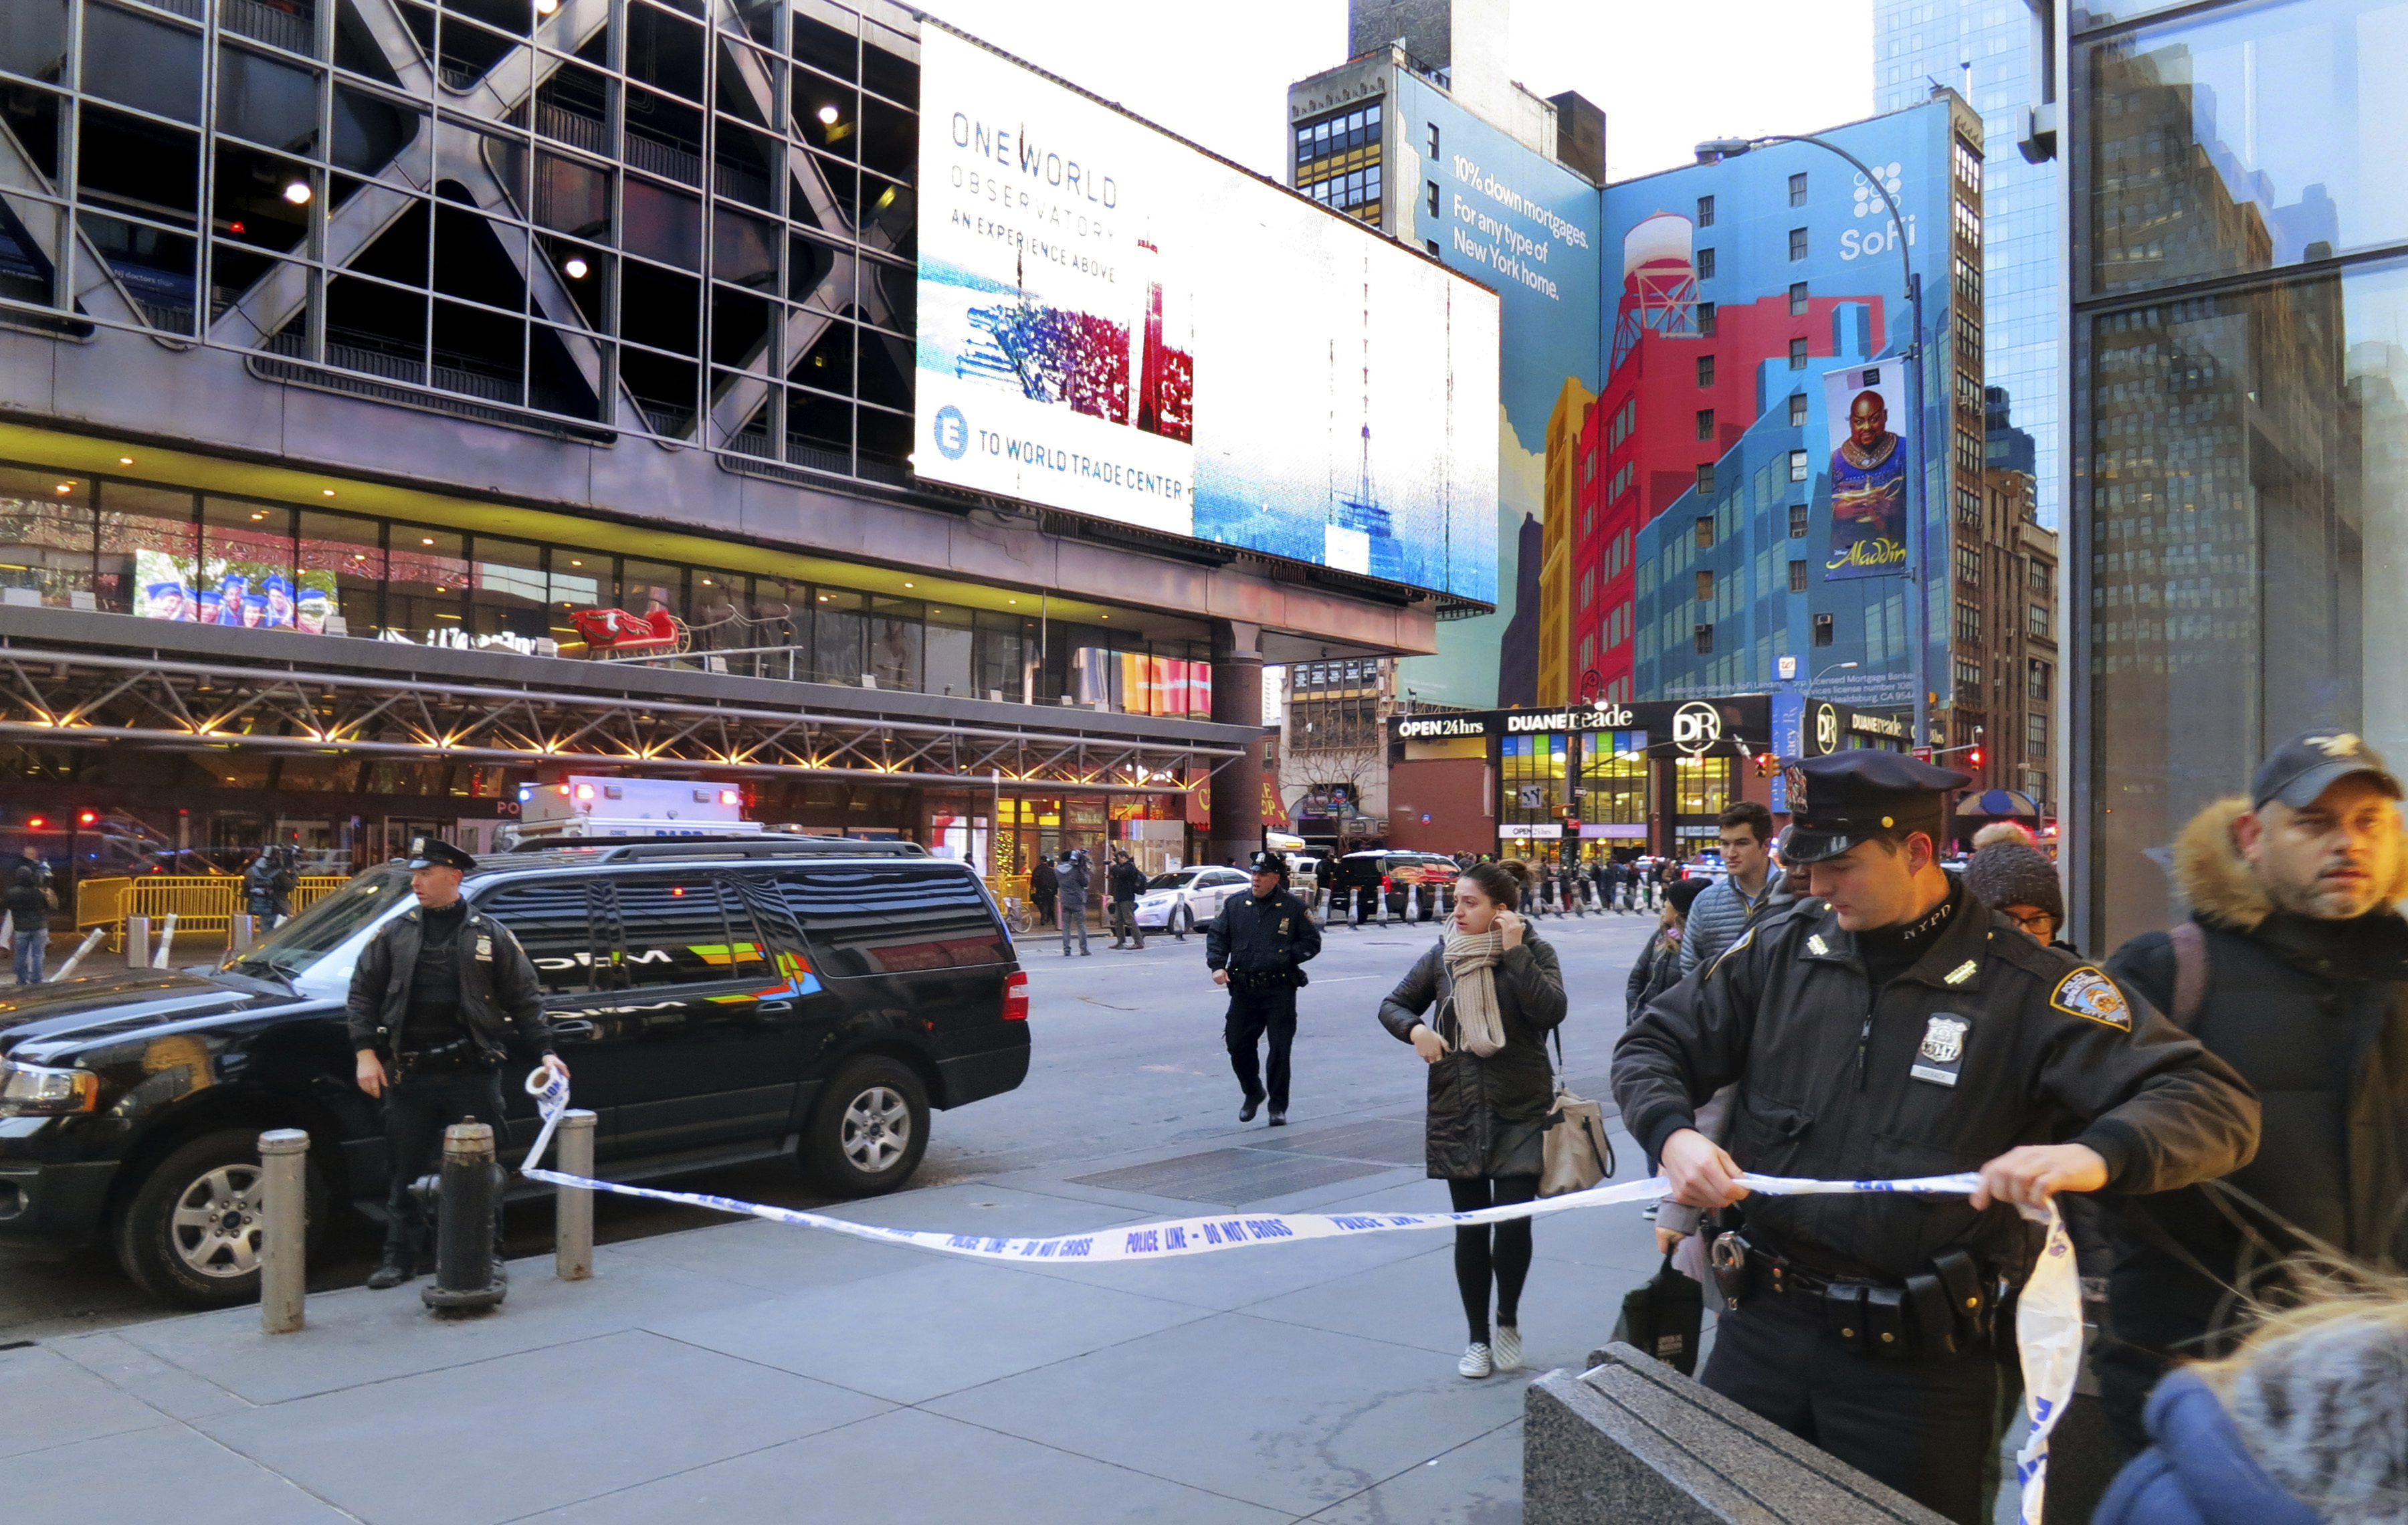 Police secure Eighth Avenue outside the Port Authority Bus Terminal following an explosion near New York's Times Square on Dec. 11, 2017.